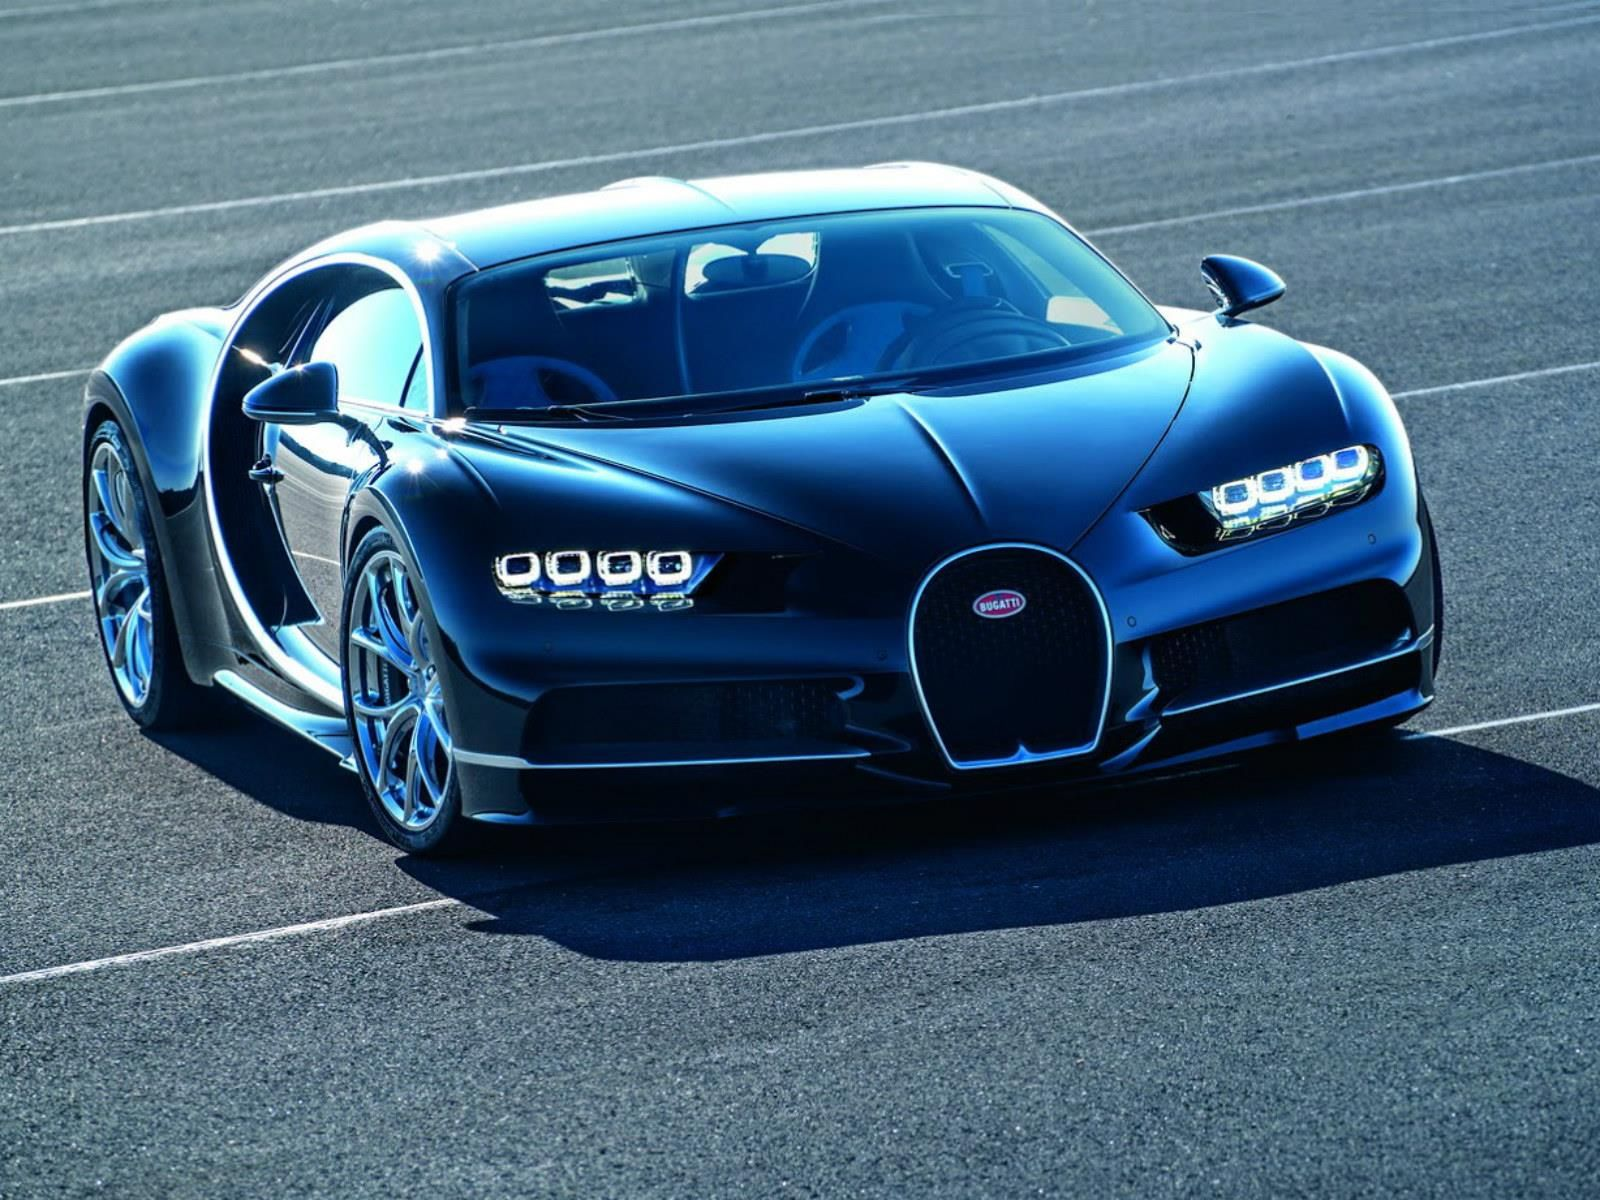 0a857a1dd097231a11cc87b6dde4300e Exciting Bugatti Veyron Cost for Oil Change Cars Trend